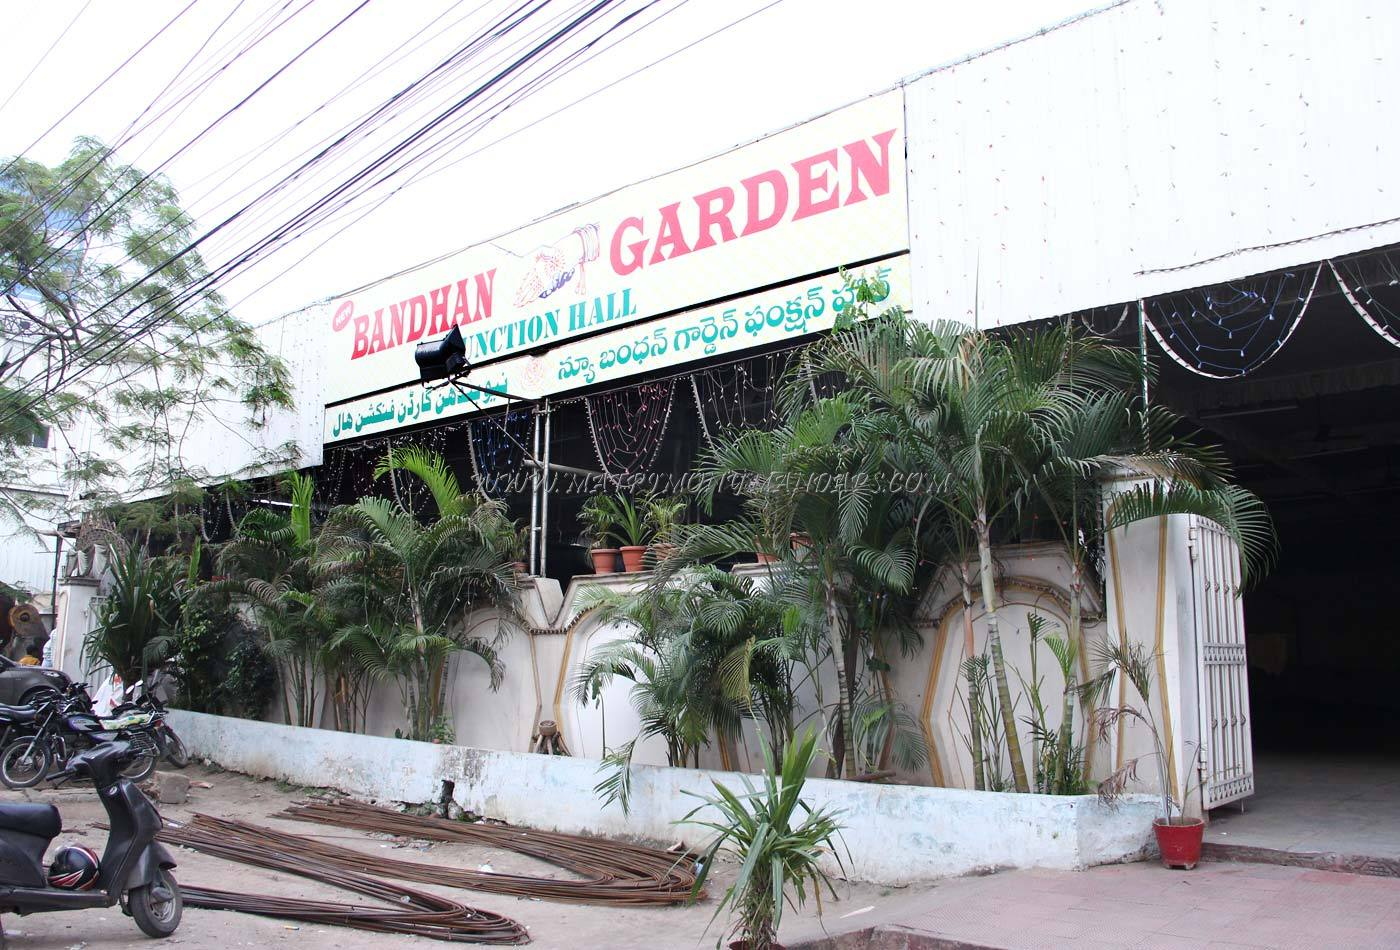 Find the availability of the New Bandhan Garden Function Hall in Mehdipatnam, Hyderabad and avail special offers